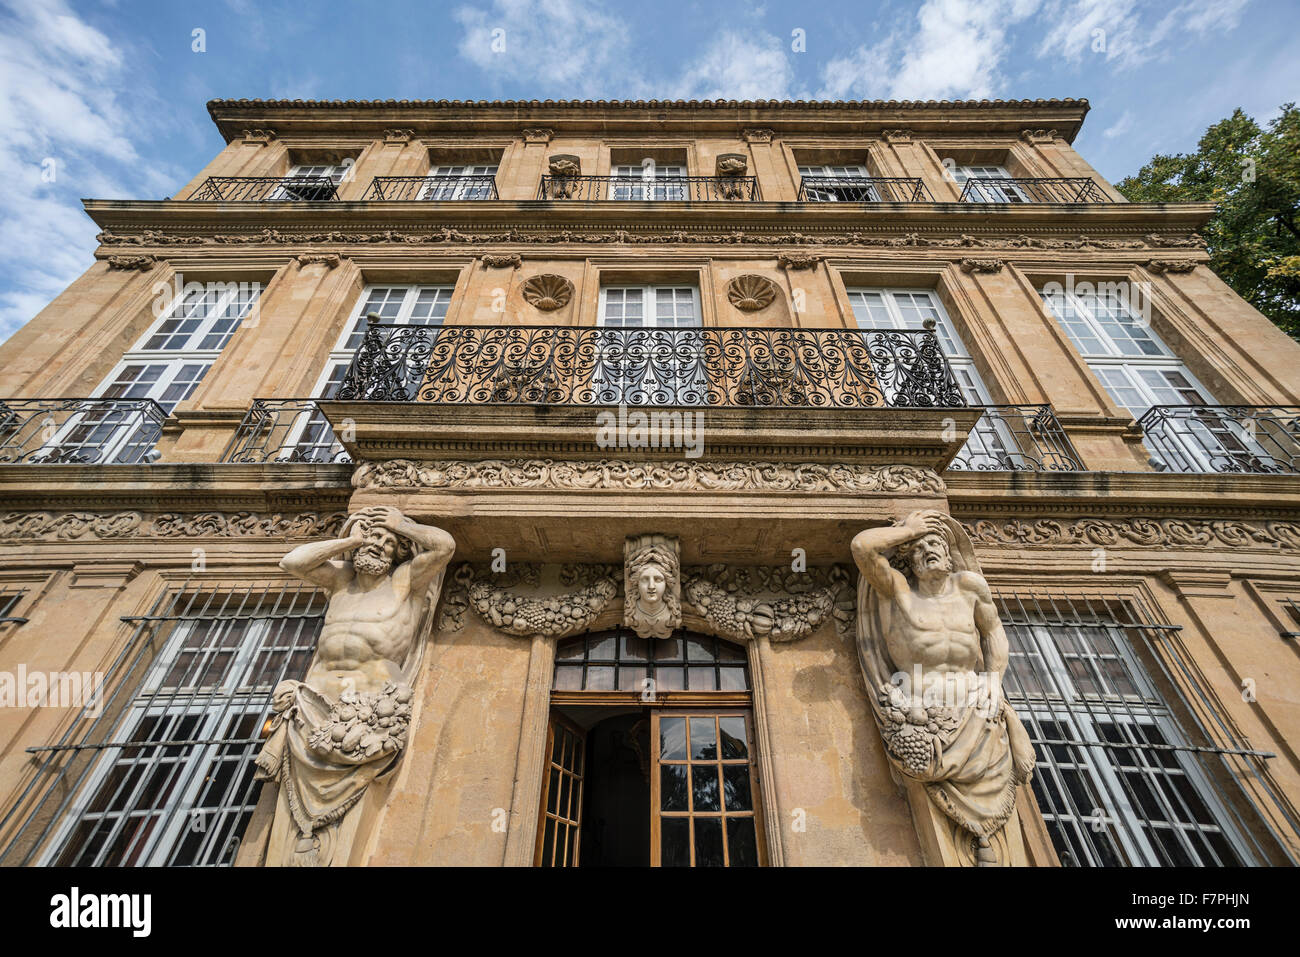 facade of Pavillon Vendome, Aix en Provence, France - Stock Image